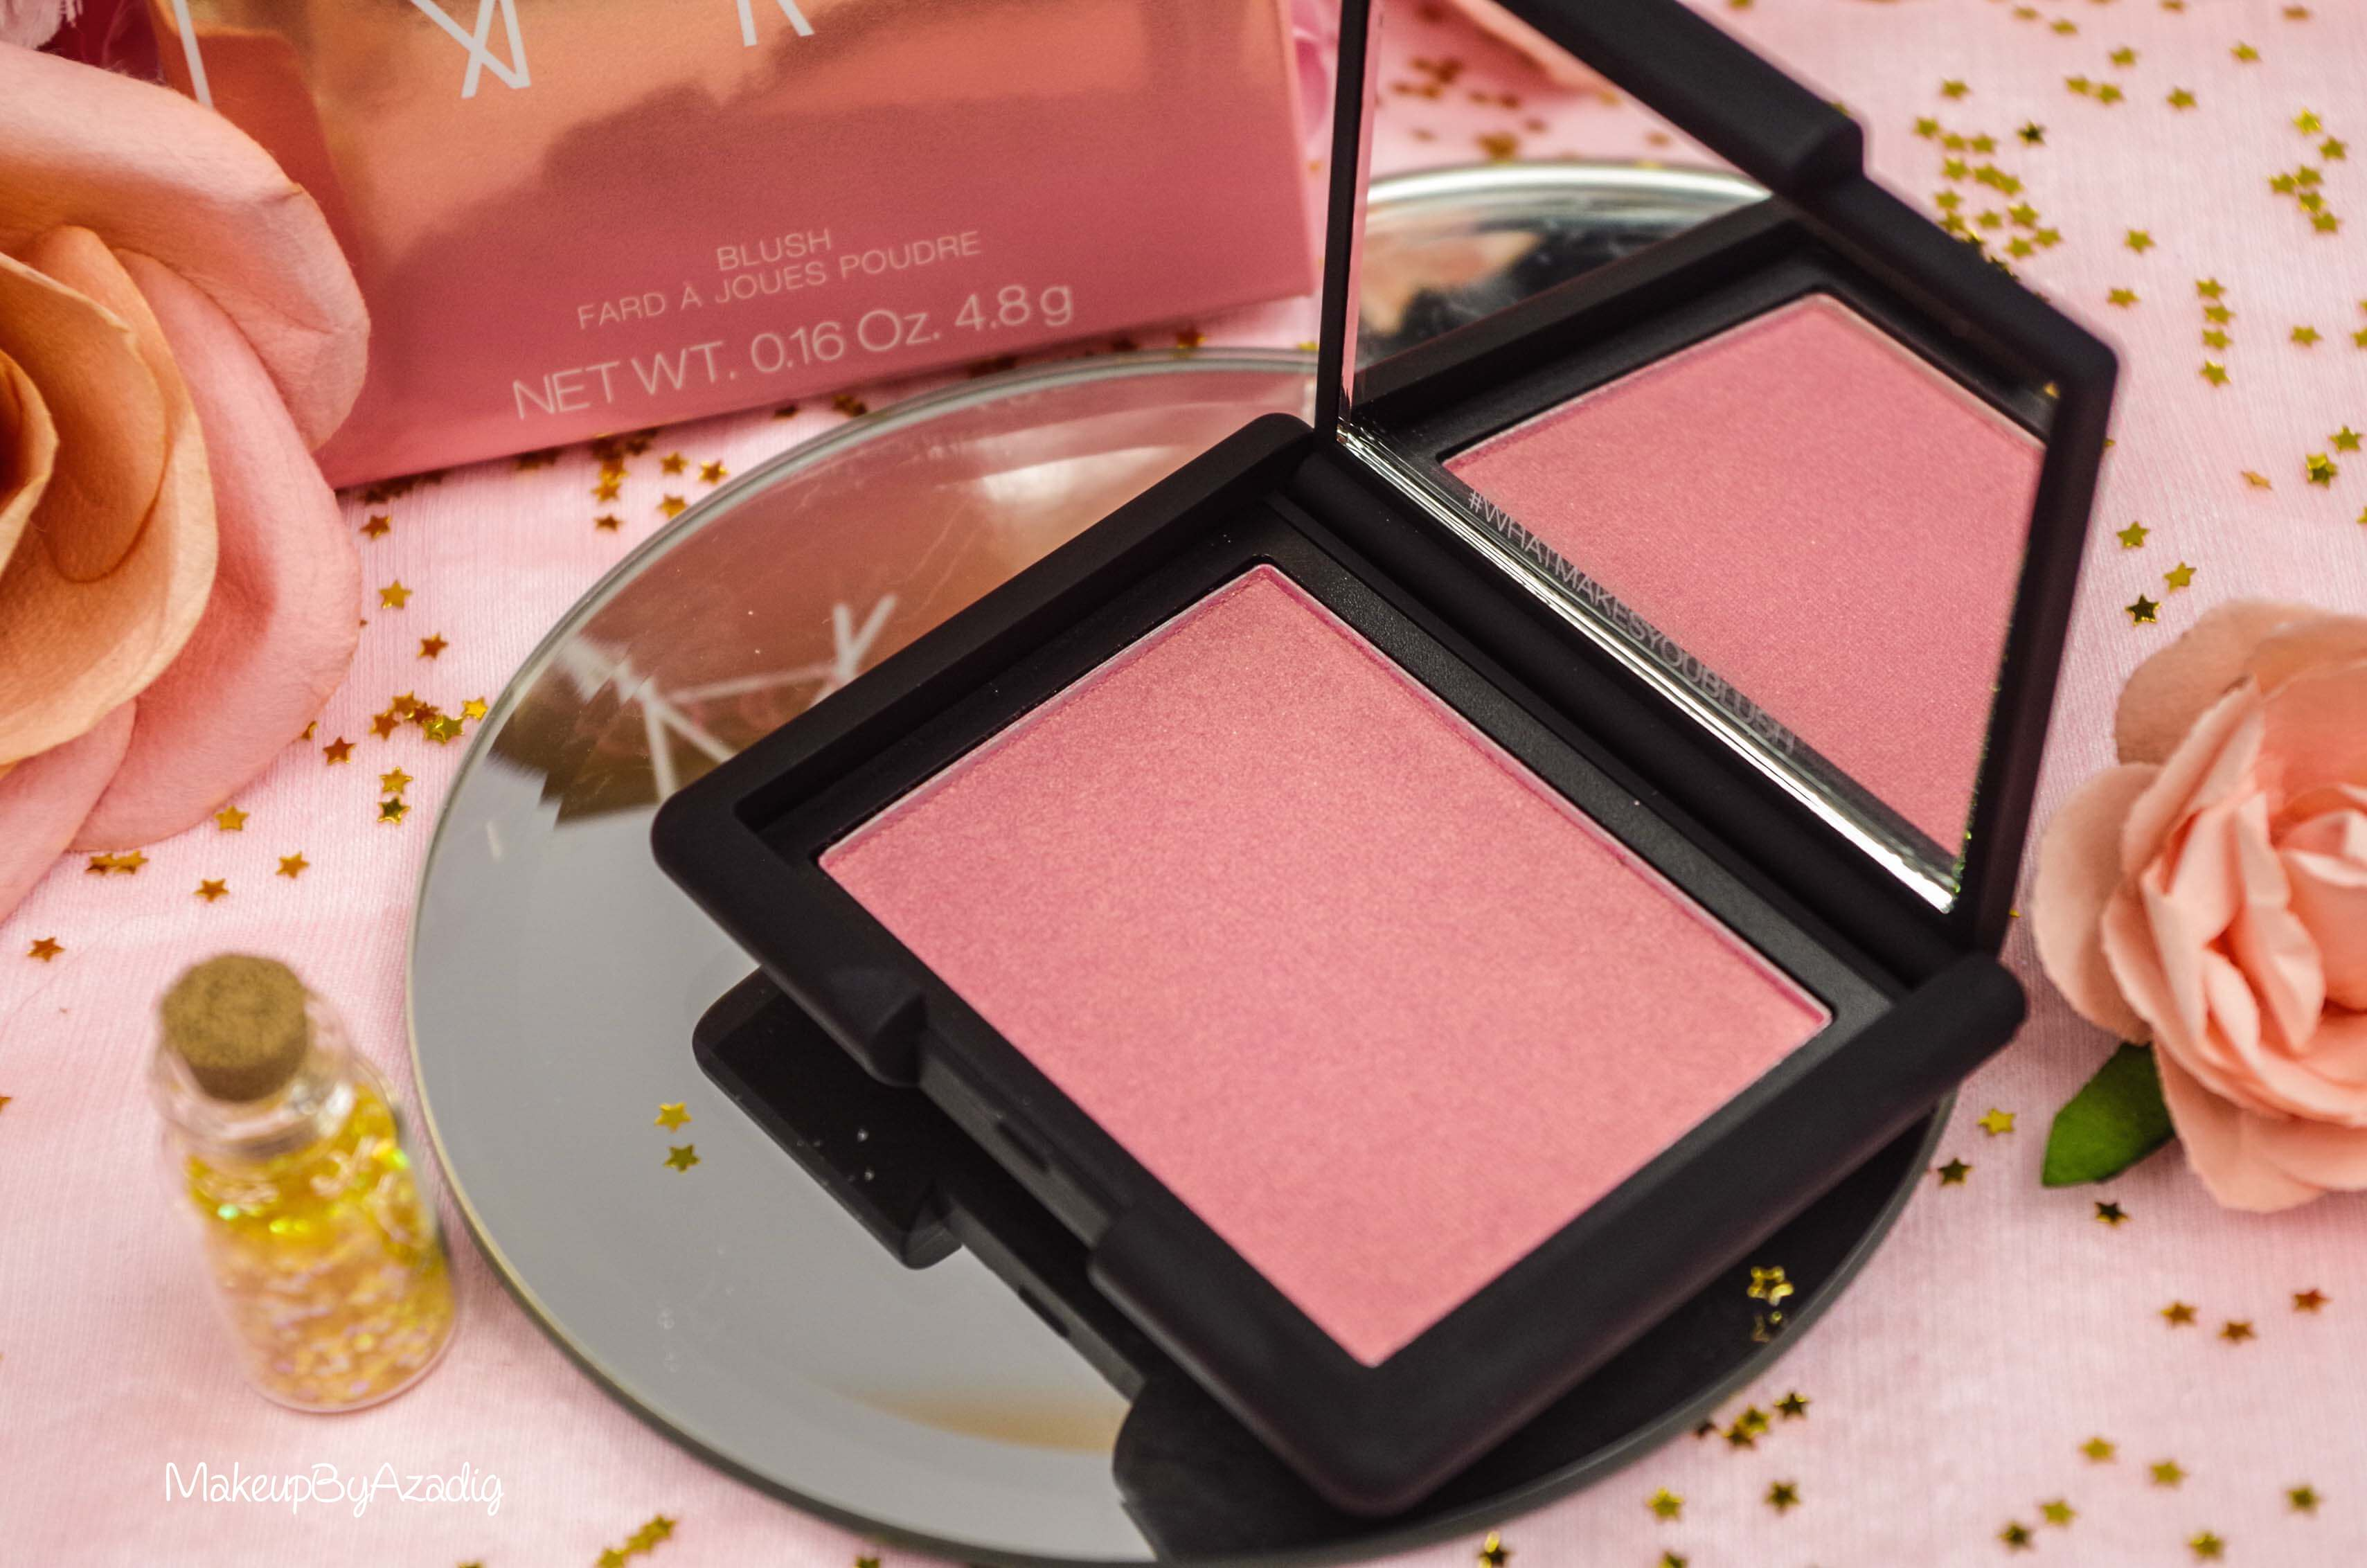 blush-liquide-orgasm-rouge-a-levres-illuminateur-highlighter-rosegold-nars-gold-makeupbyazadig